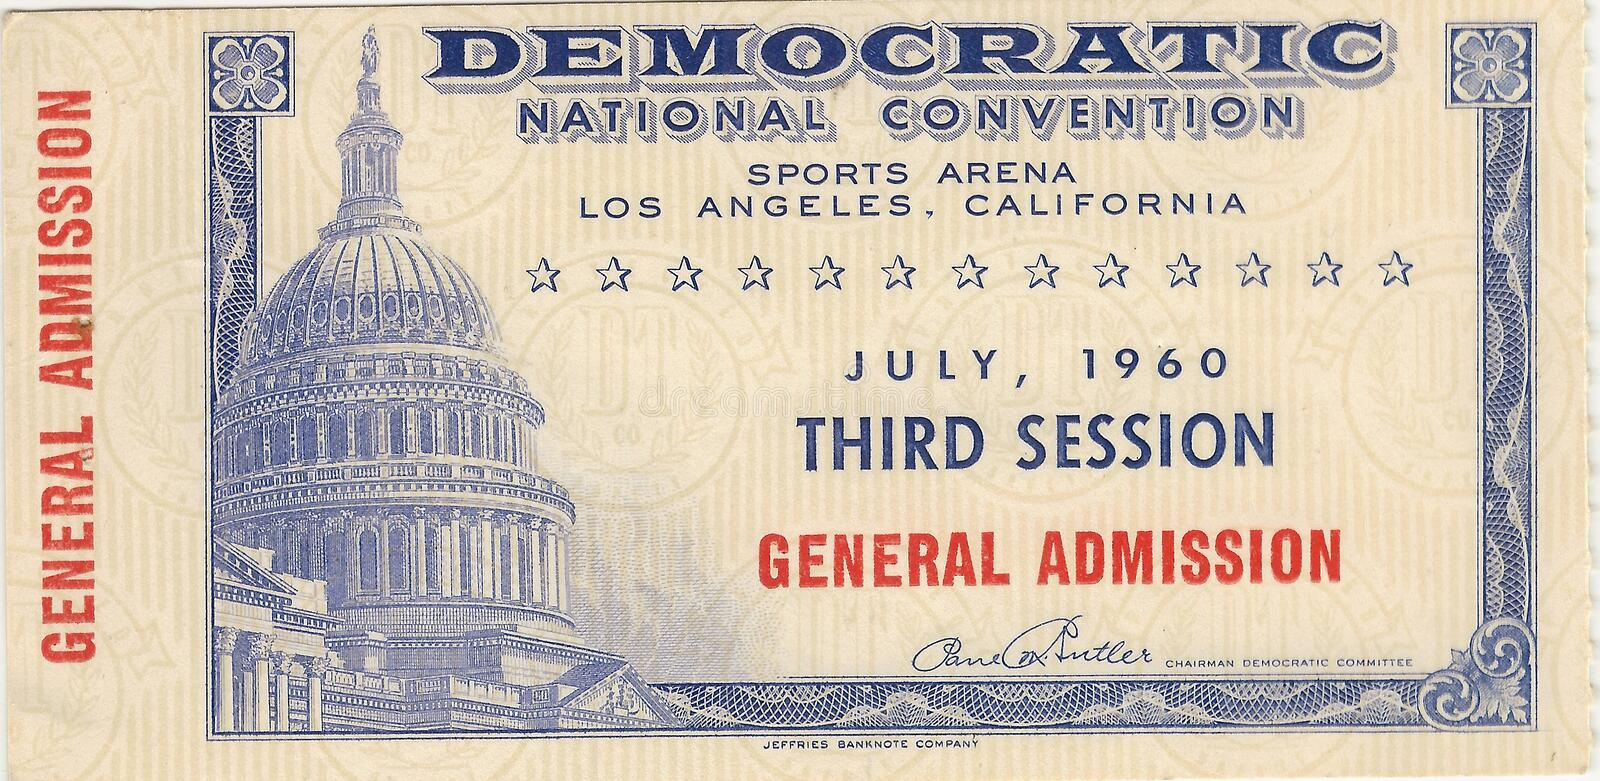 John F Kennedy 1960 Convention Ticket Editorial Stock Image